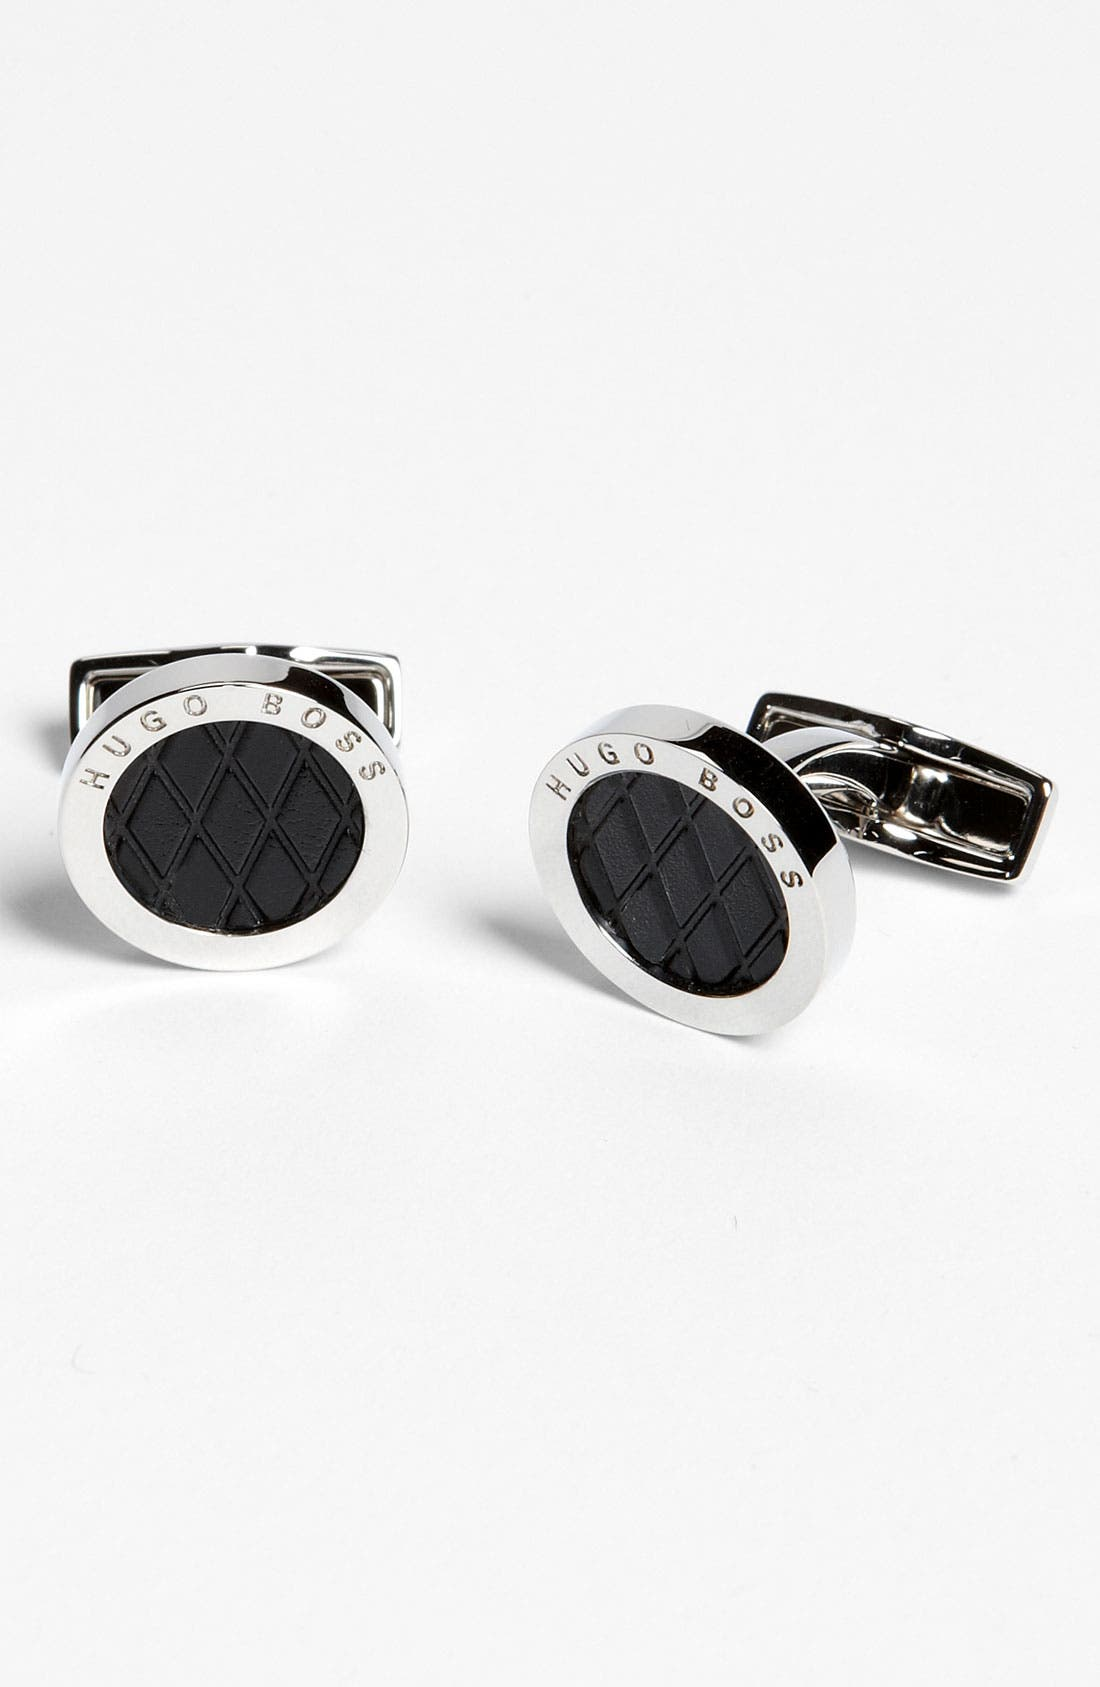 Main Image - BOSS Black 'Lael' Cuff Links